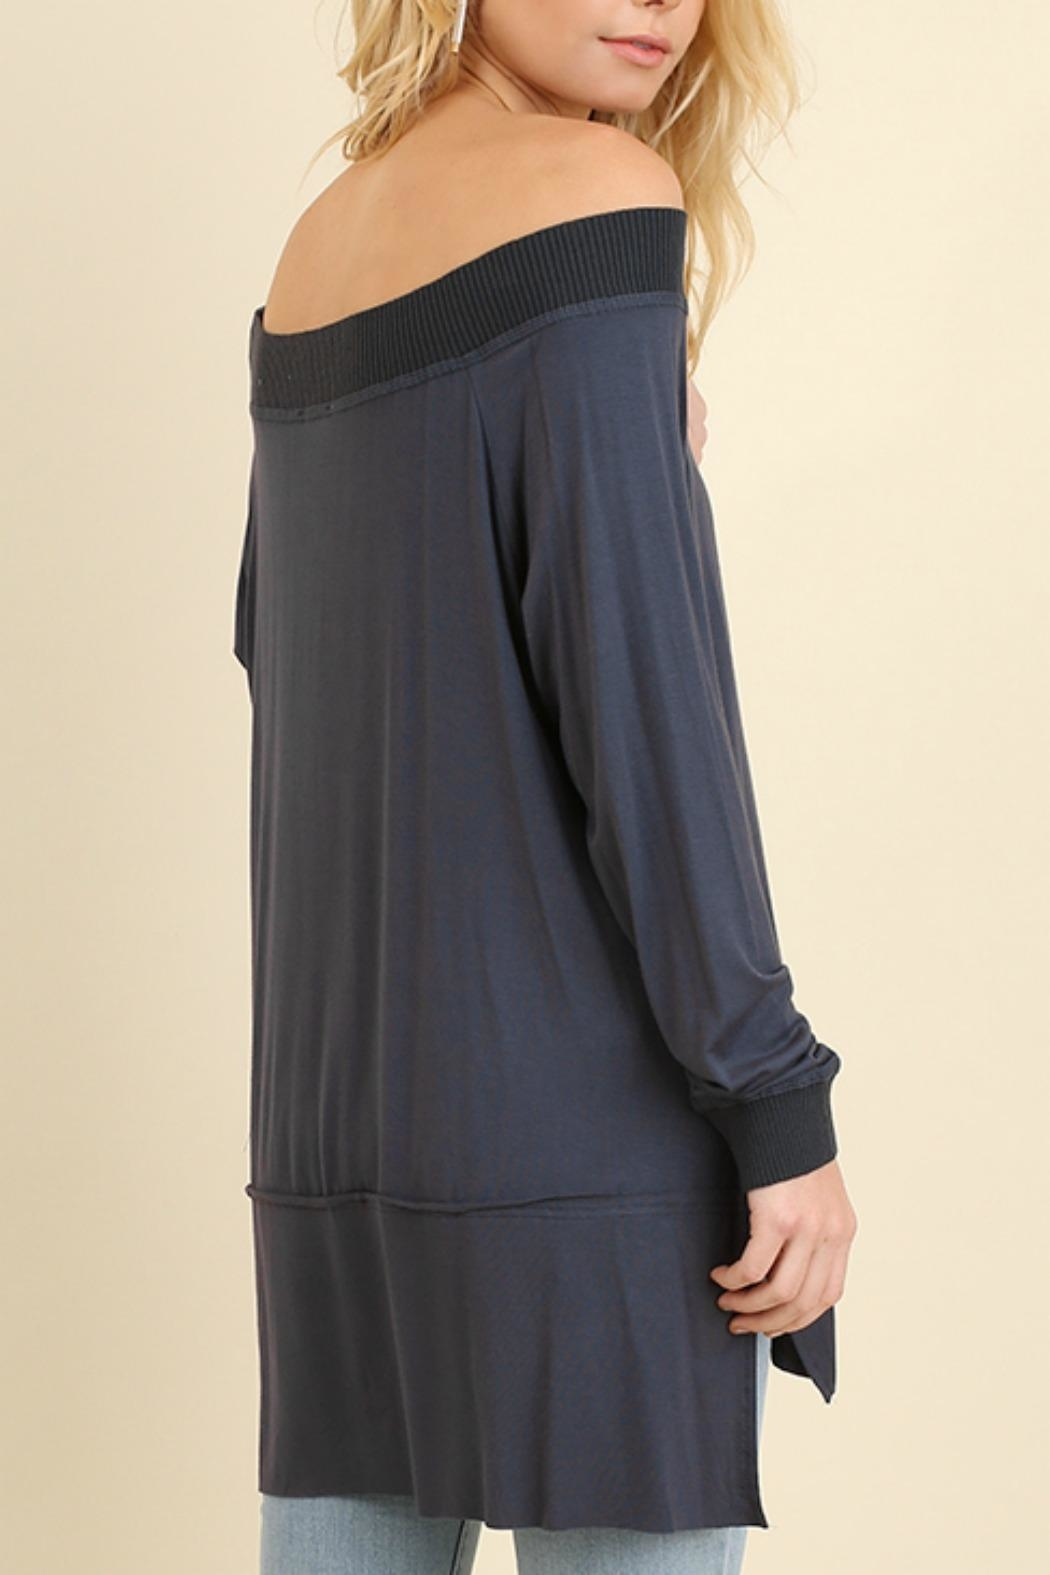 34241b59c7db7 Umgee USA Off-Shoulder Classy Top from Texas by BareTrees Boutique ...